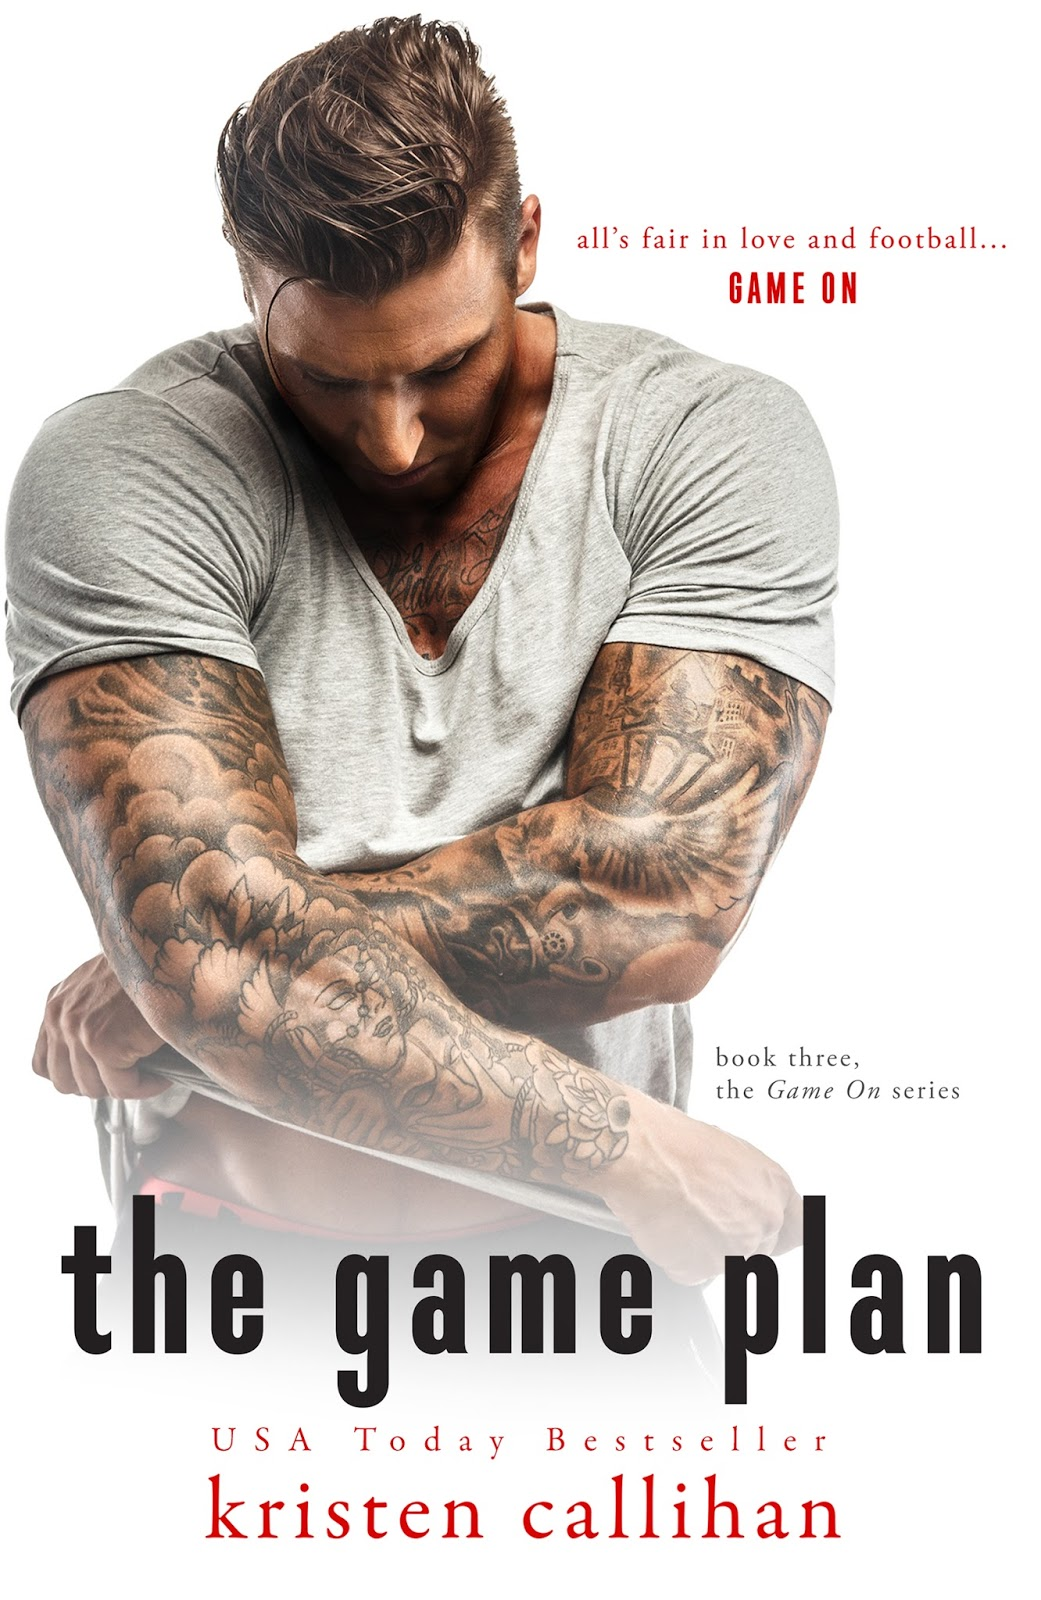 the hookup kristen goodreads The hook up (game on #1) author: kristen callihan prologue i'm late, and it's the first day of class i'd like to lay blame on something—car problems.